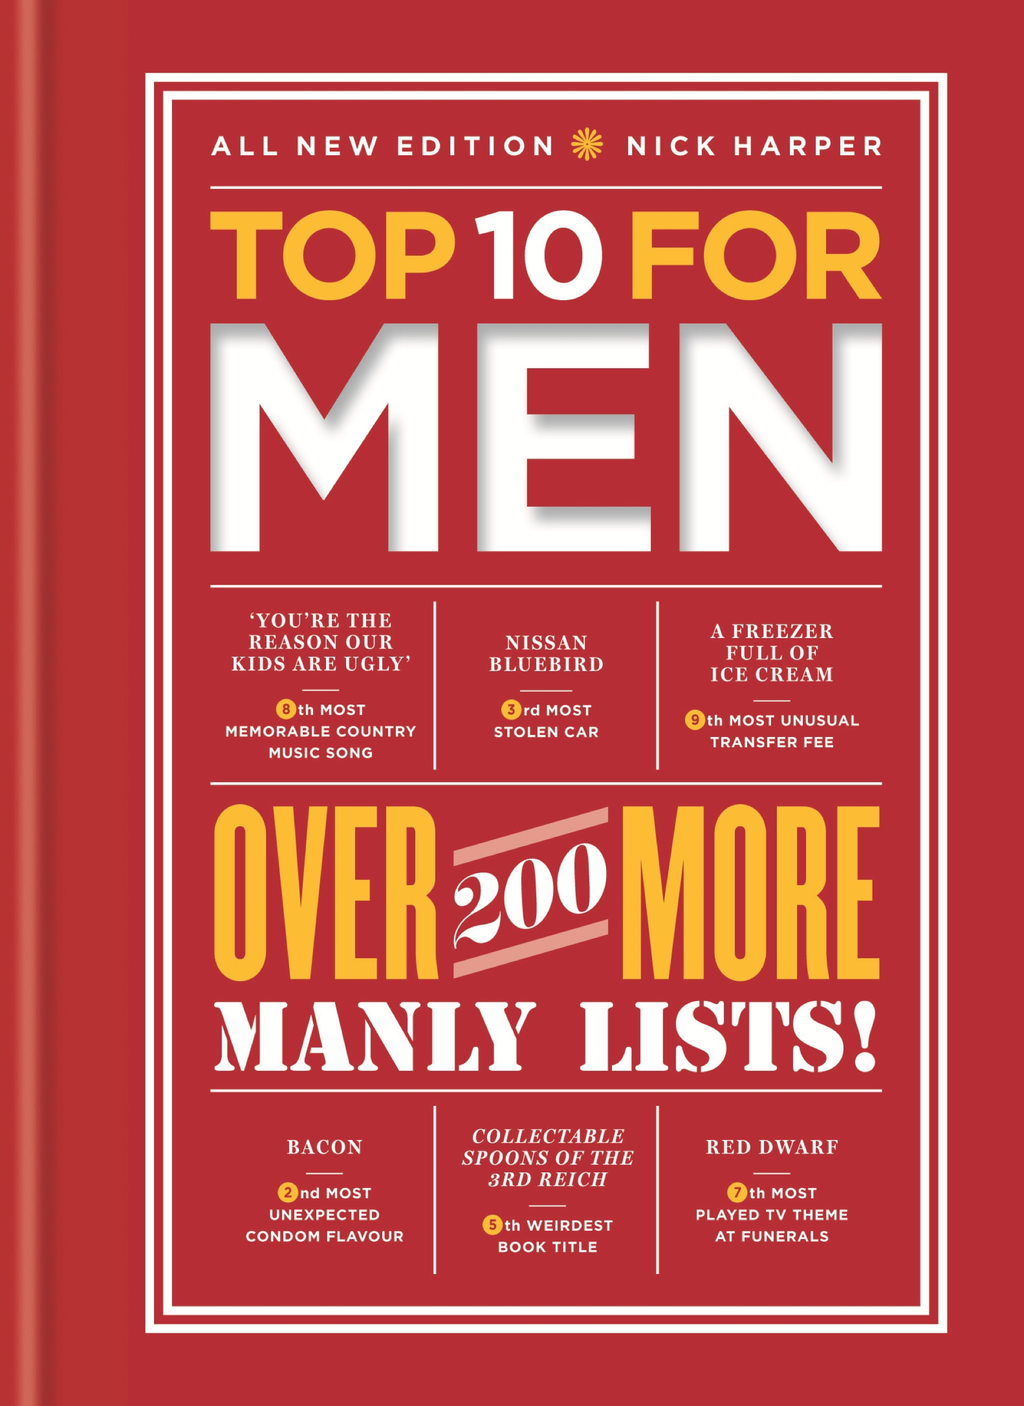 Top 10 for Men over 200 more manly lists!